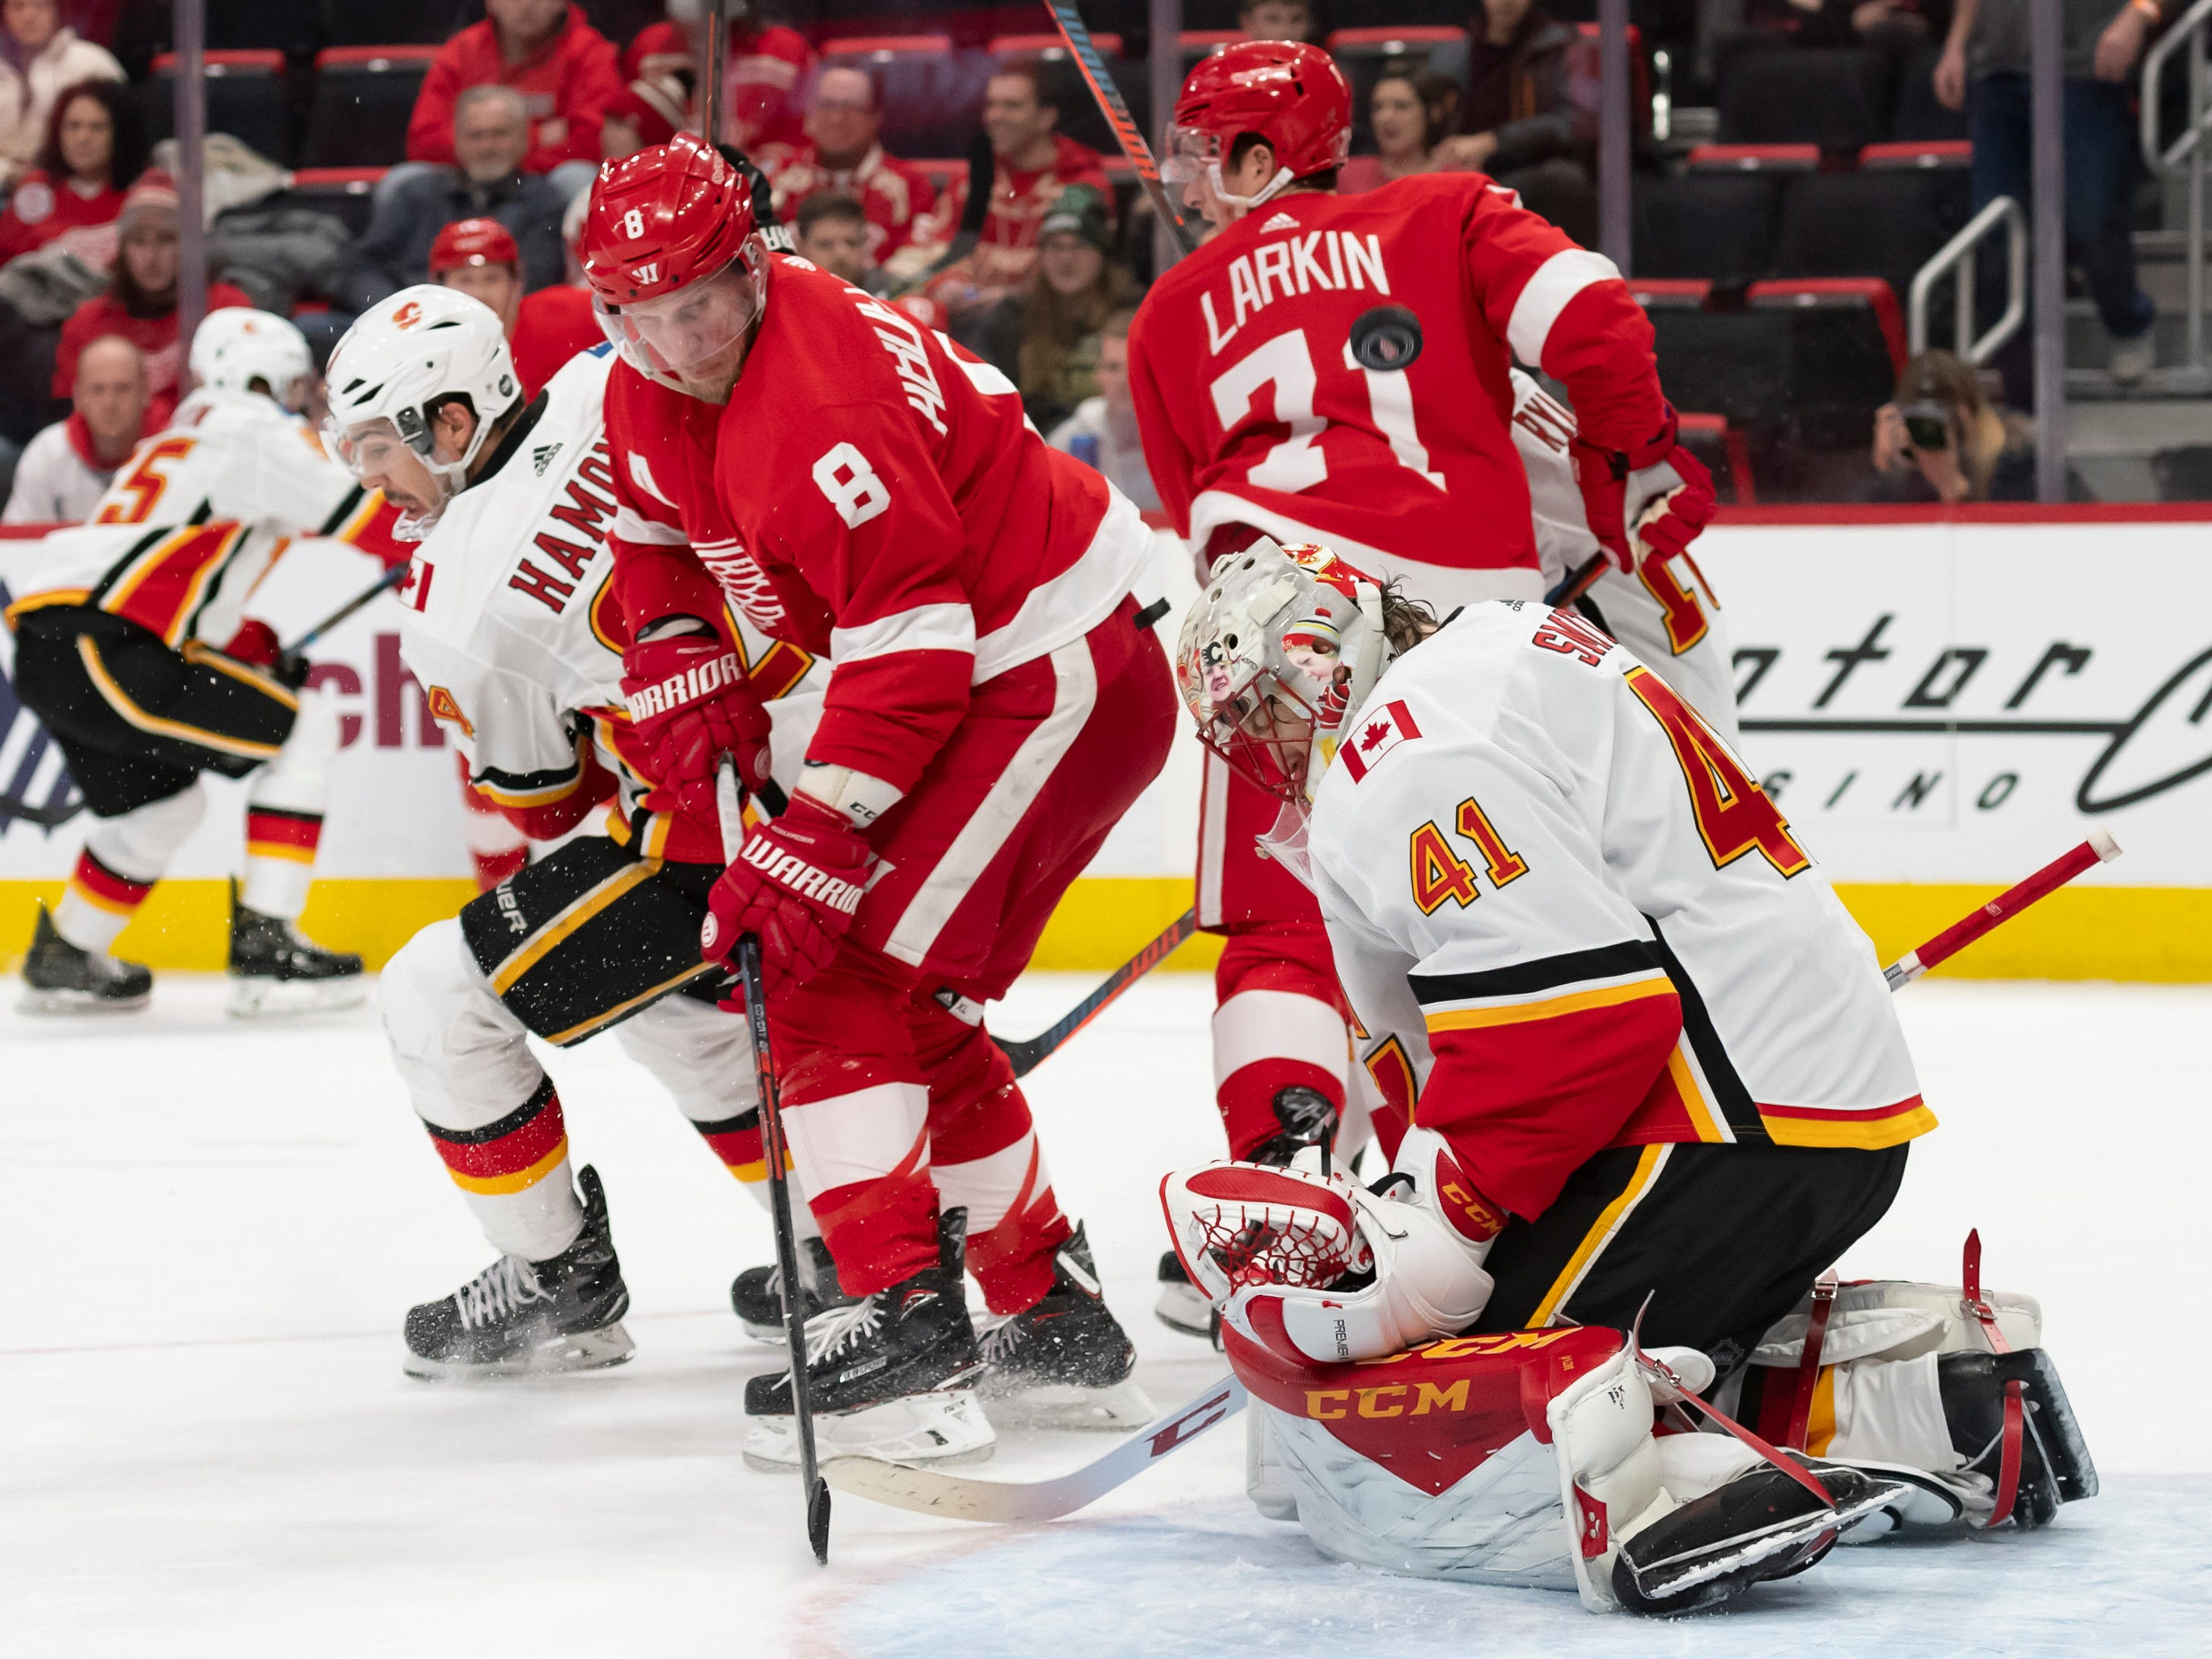 Detroit left wing Justin Abdelkader tries to deflect the puck past Calgary goaltender Mike Smith in the first period.